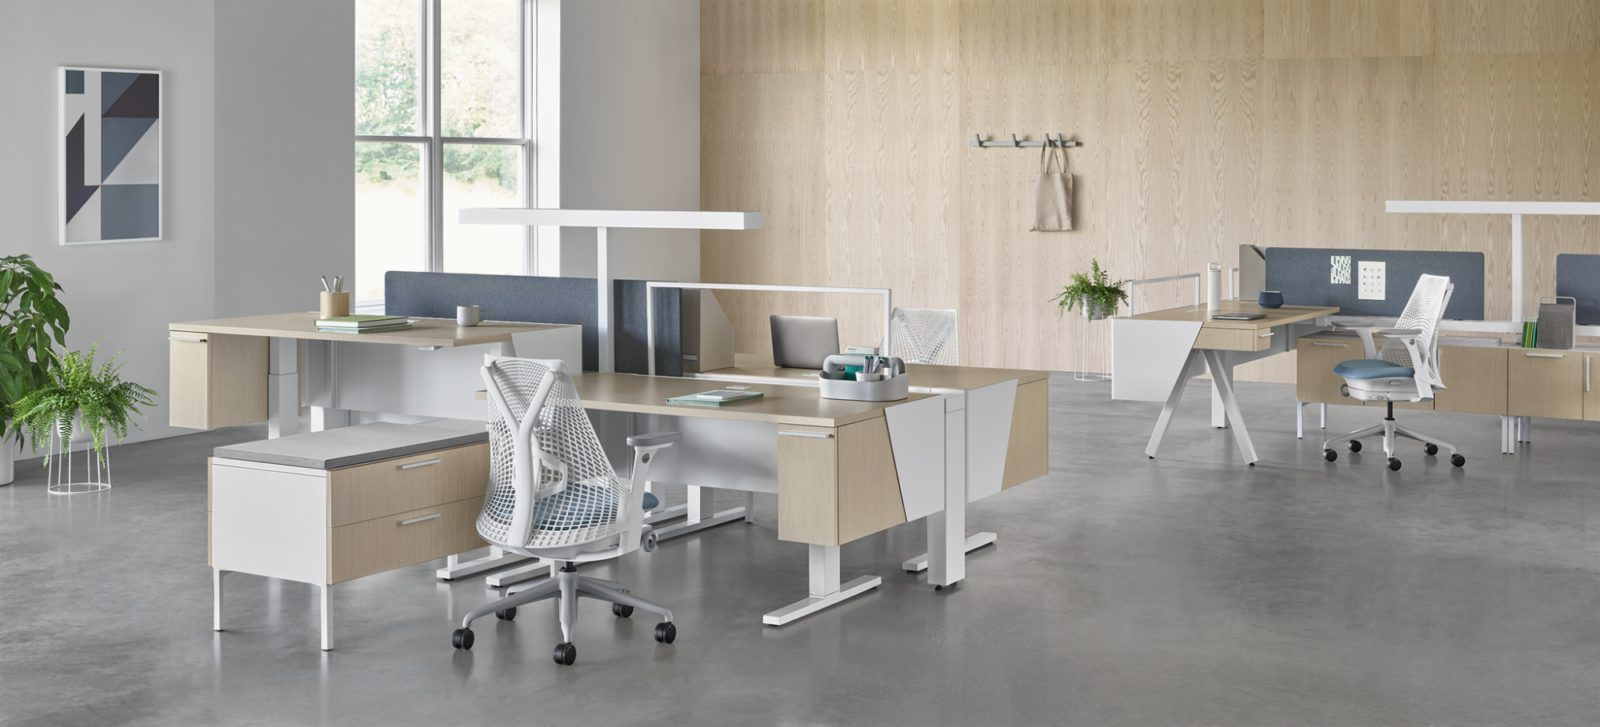 Herman Miller Canvas sit to stand Desks with white and grey Sayl chairs